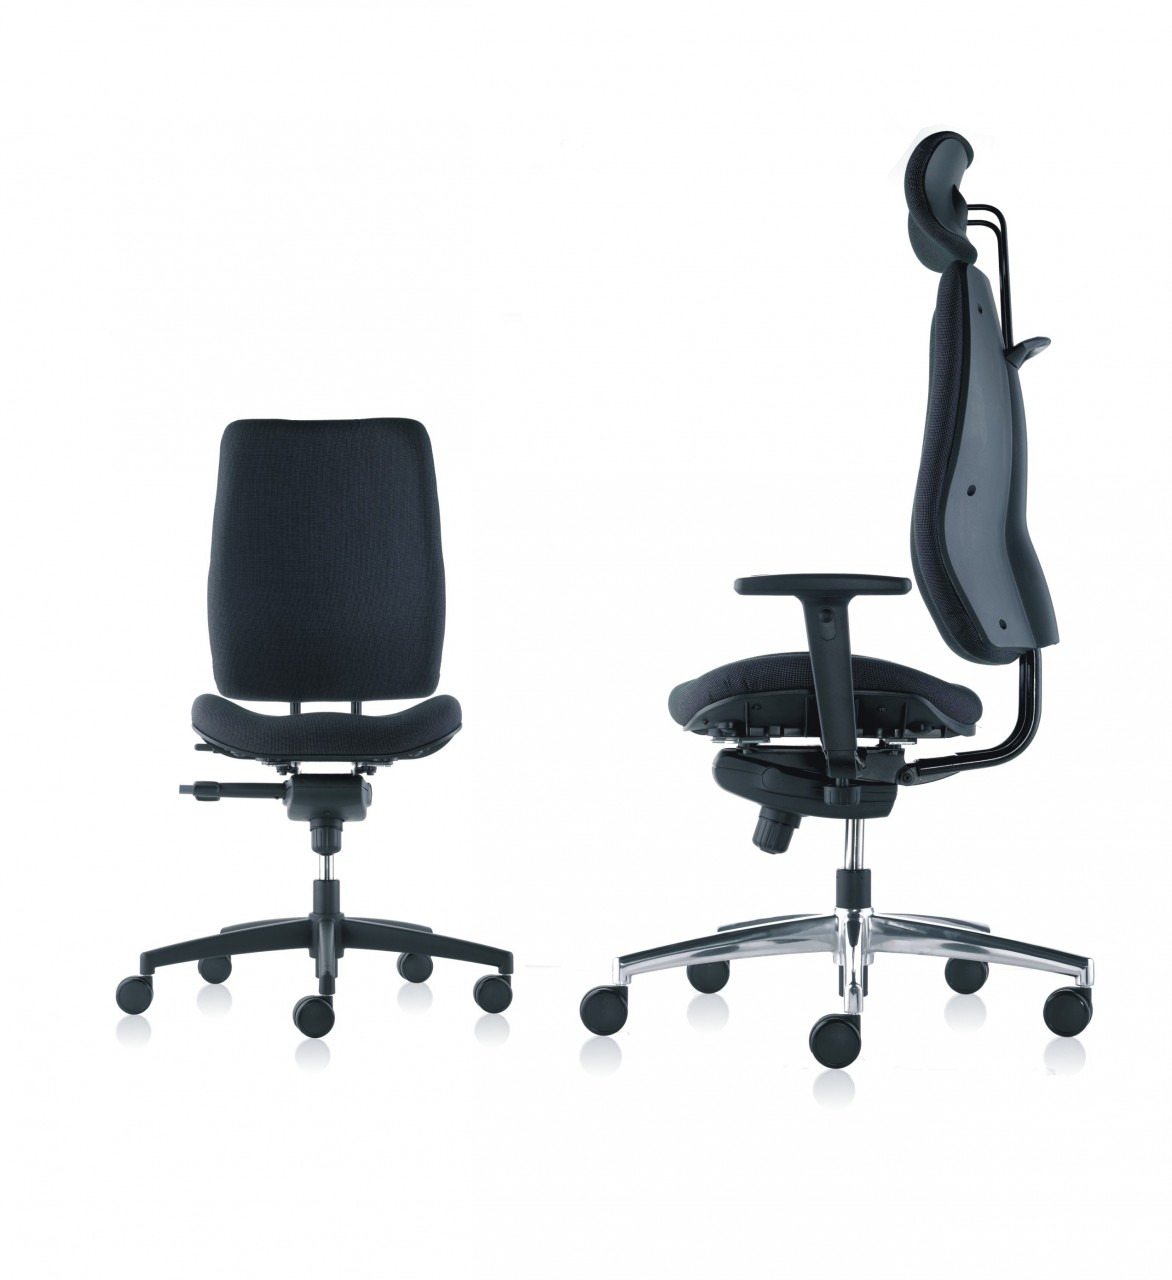 fauteuil de bureau ergonomique confortic achat si ges ergonomiques 279 00. Black Bedroom Furniture Sets. Home Design Ideas